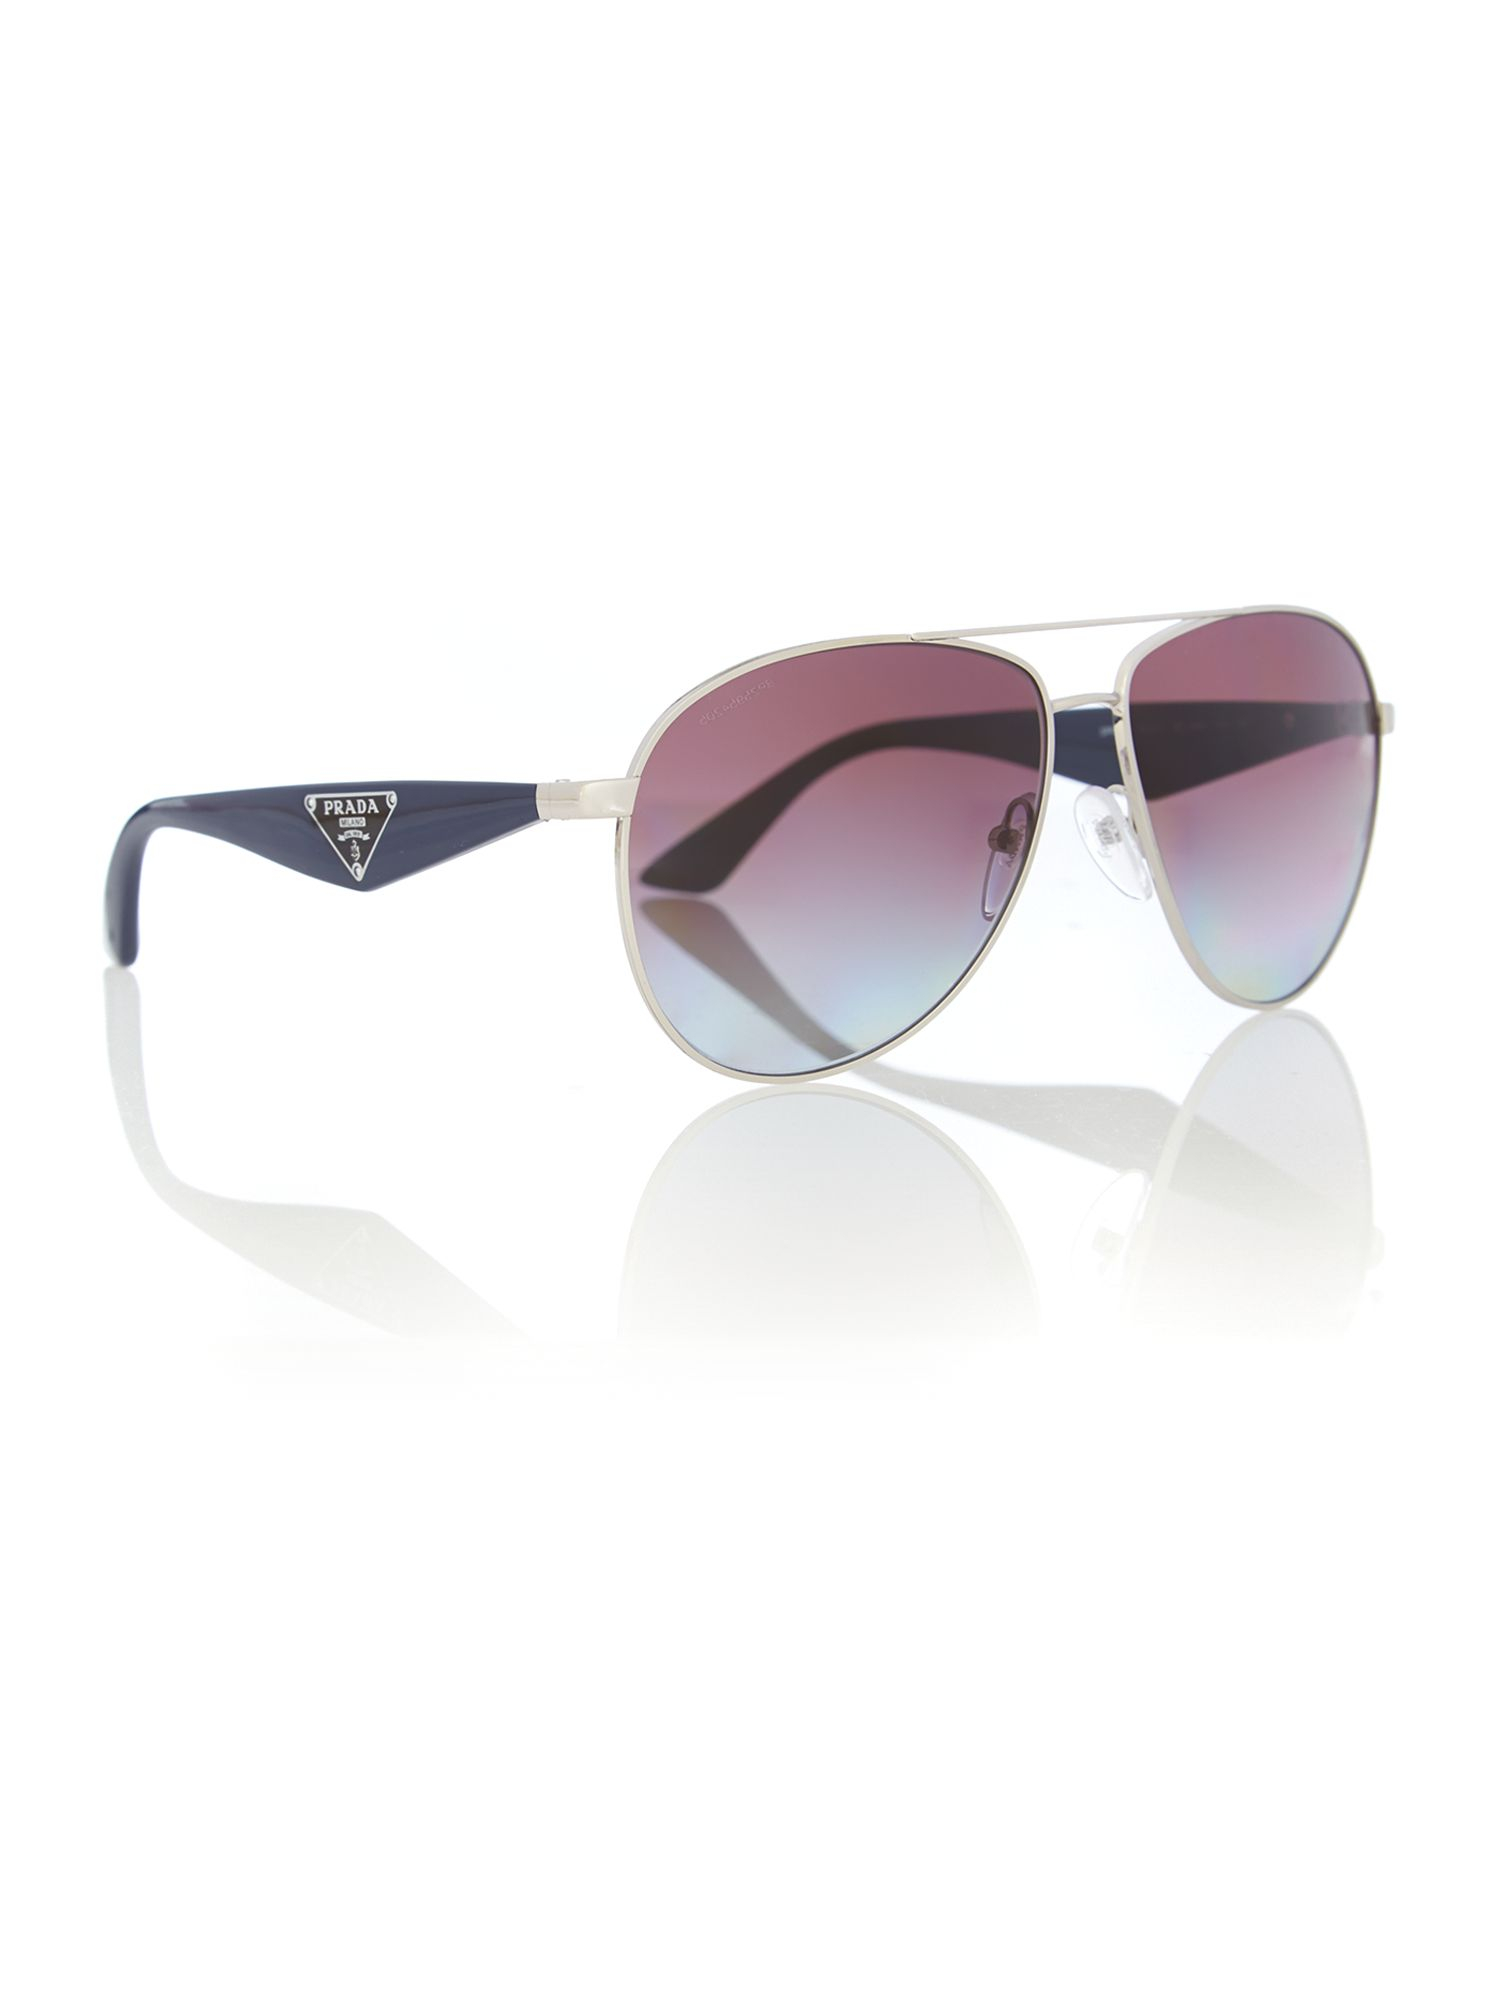 purple prada sunglasses for women